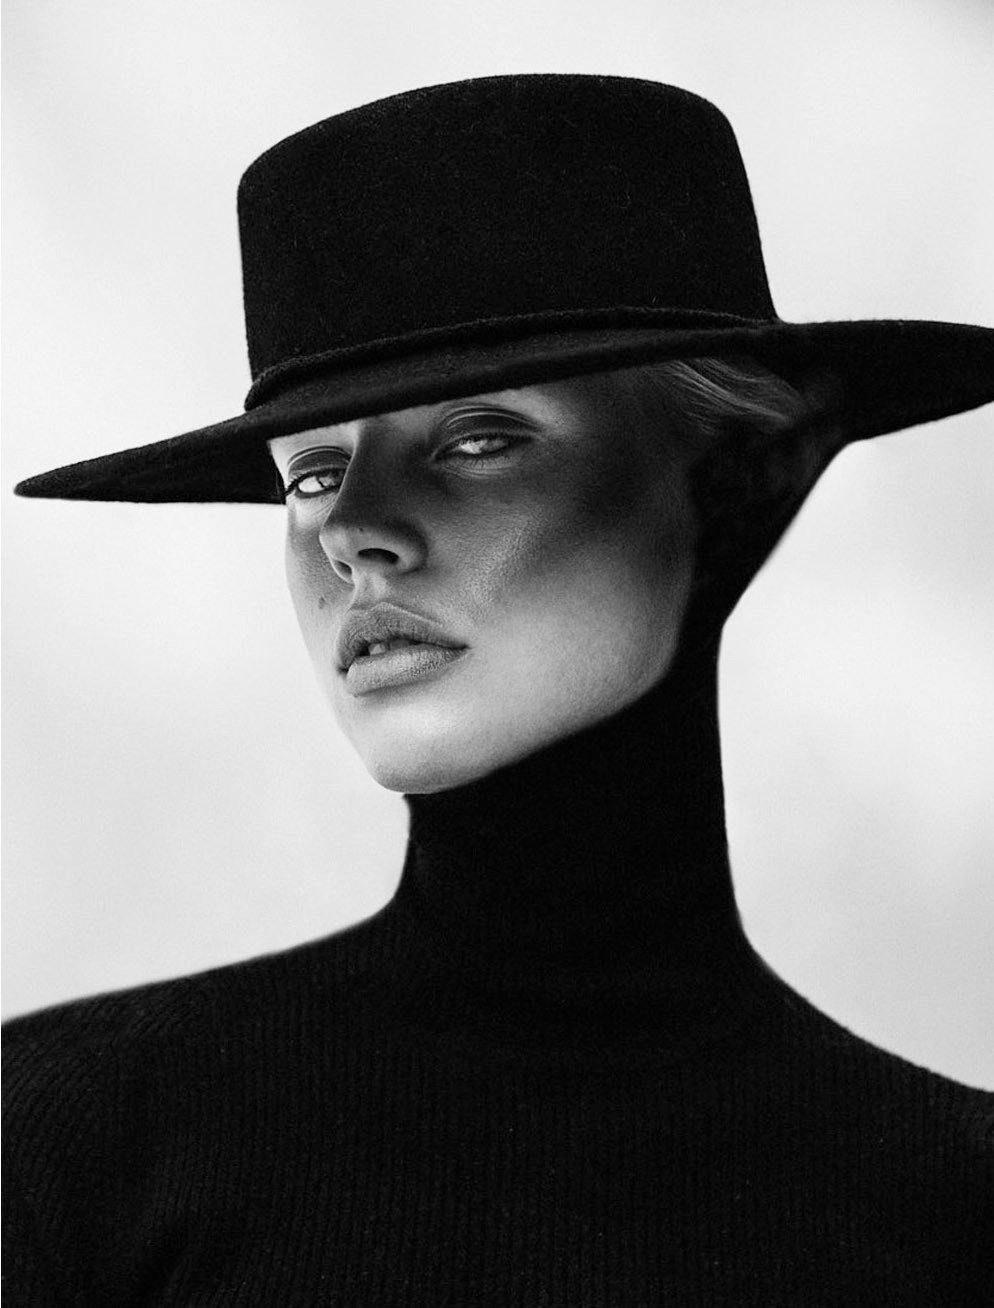 Oh My Hat, hat, black, model, Vogue magazine, elle, vogue, marie claire, photo, prints, fashion, Daniella Midenge, Fine art, photography, home decor, wall decor, interior design, La Maison Rebelle, gift shop, Los Angeles, fine art photography, signed, limited edition, art gallery, gallery, hollywood